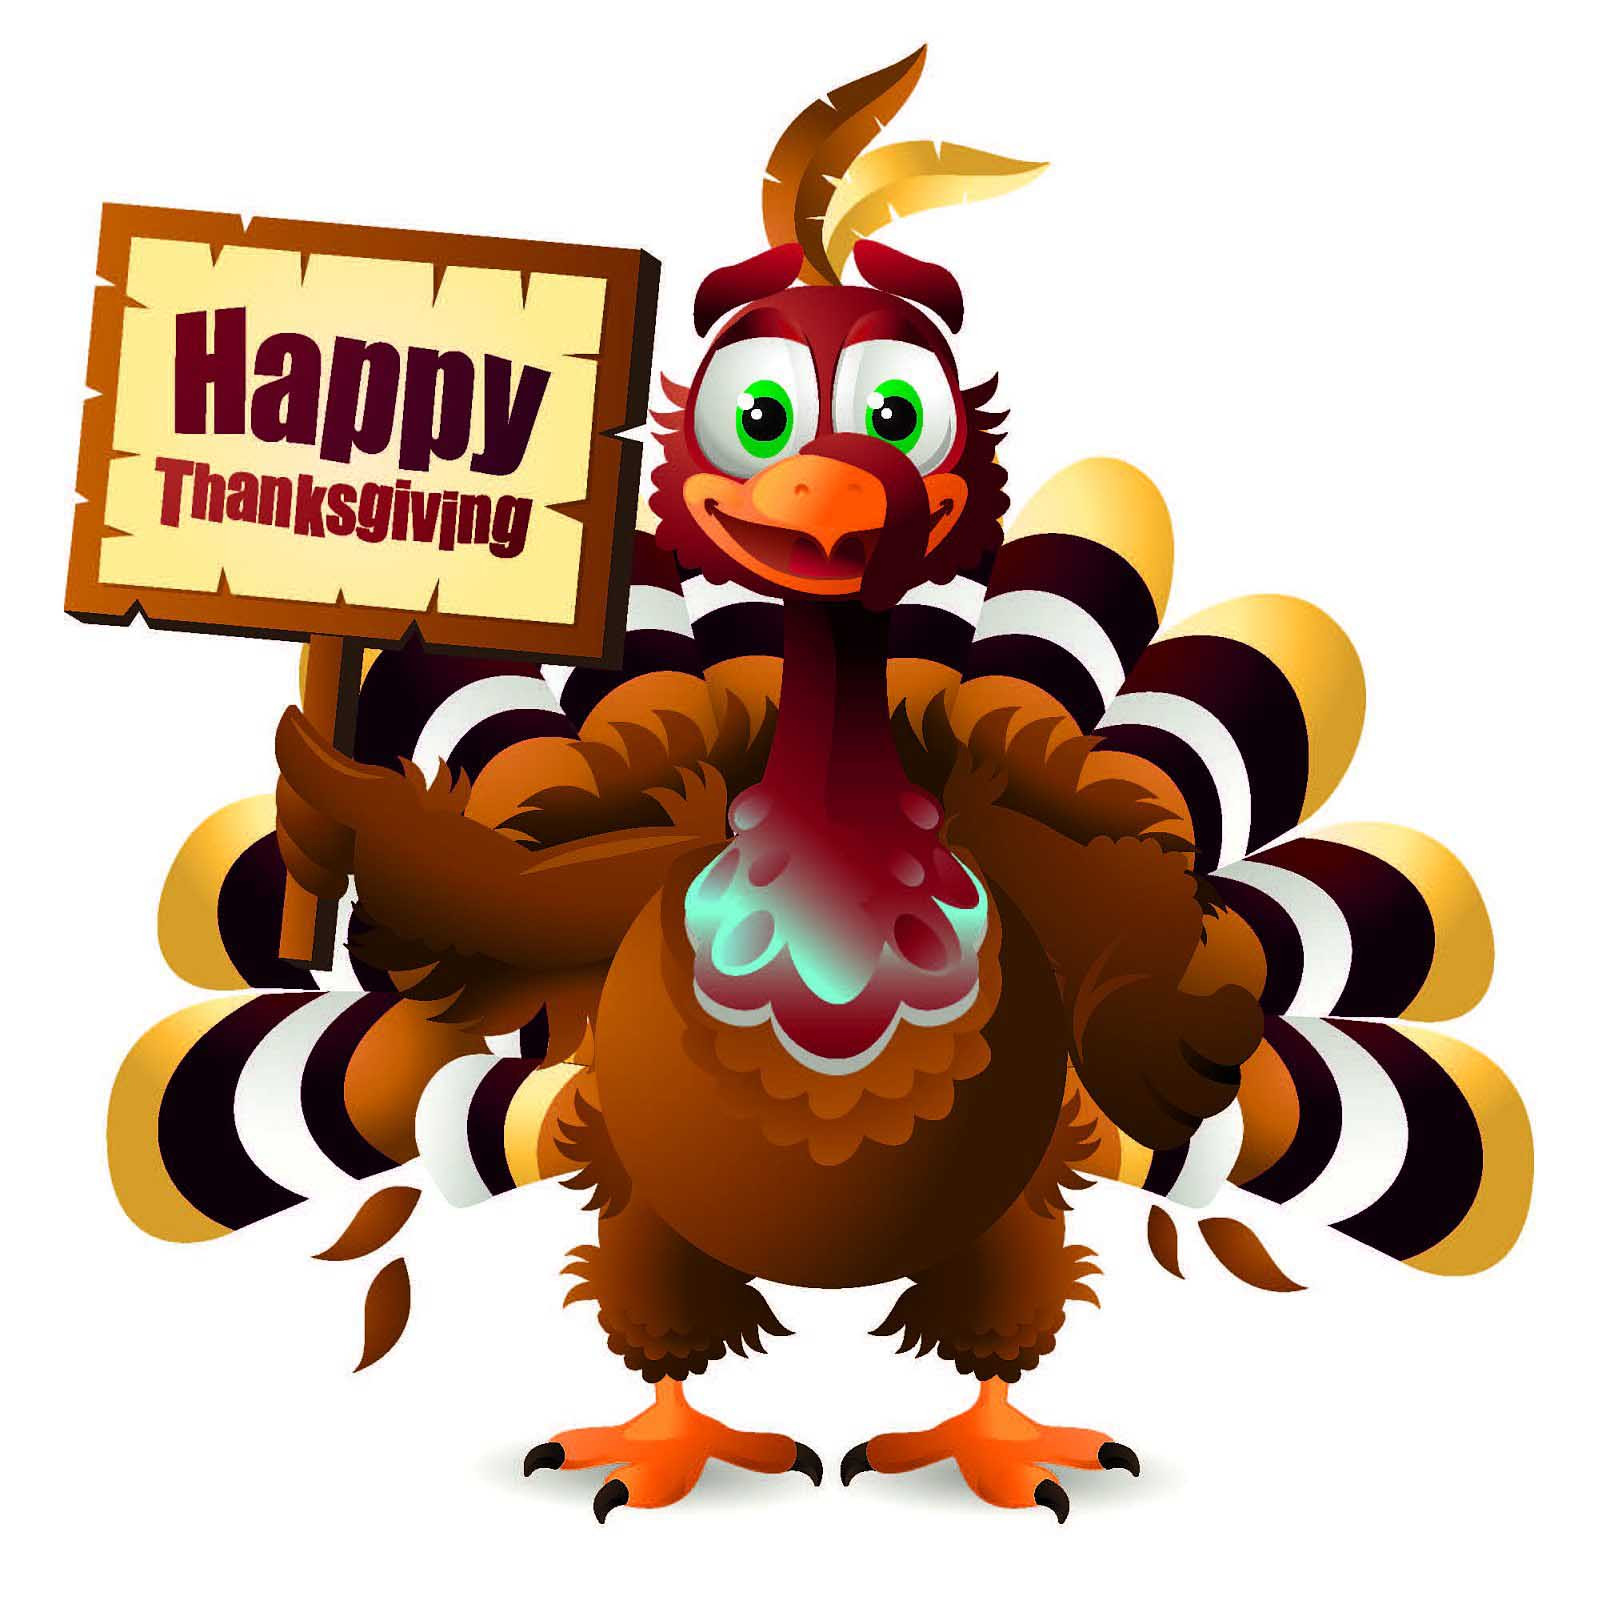 Thanksgiving Turkey Graphic  2016 Thanksgiving Charlie Brown Wallpapers & Clipart s